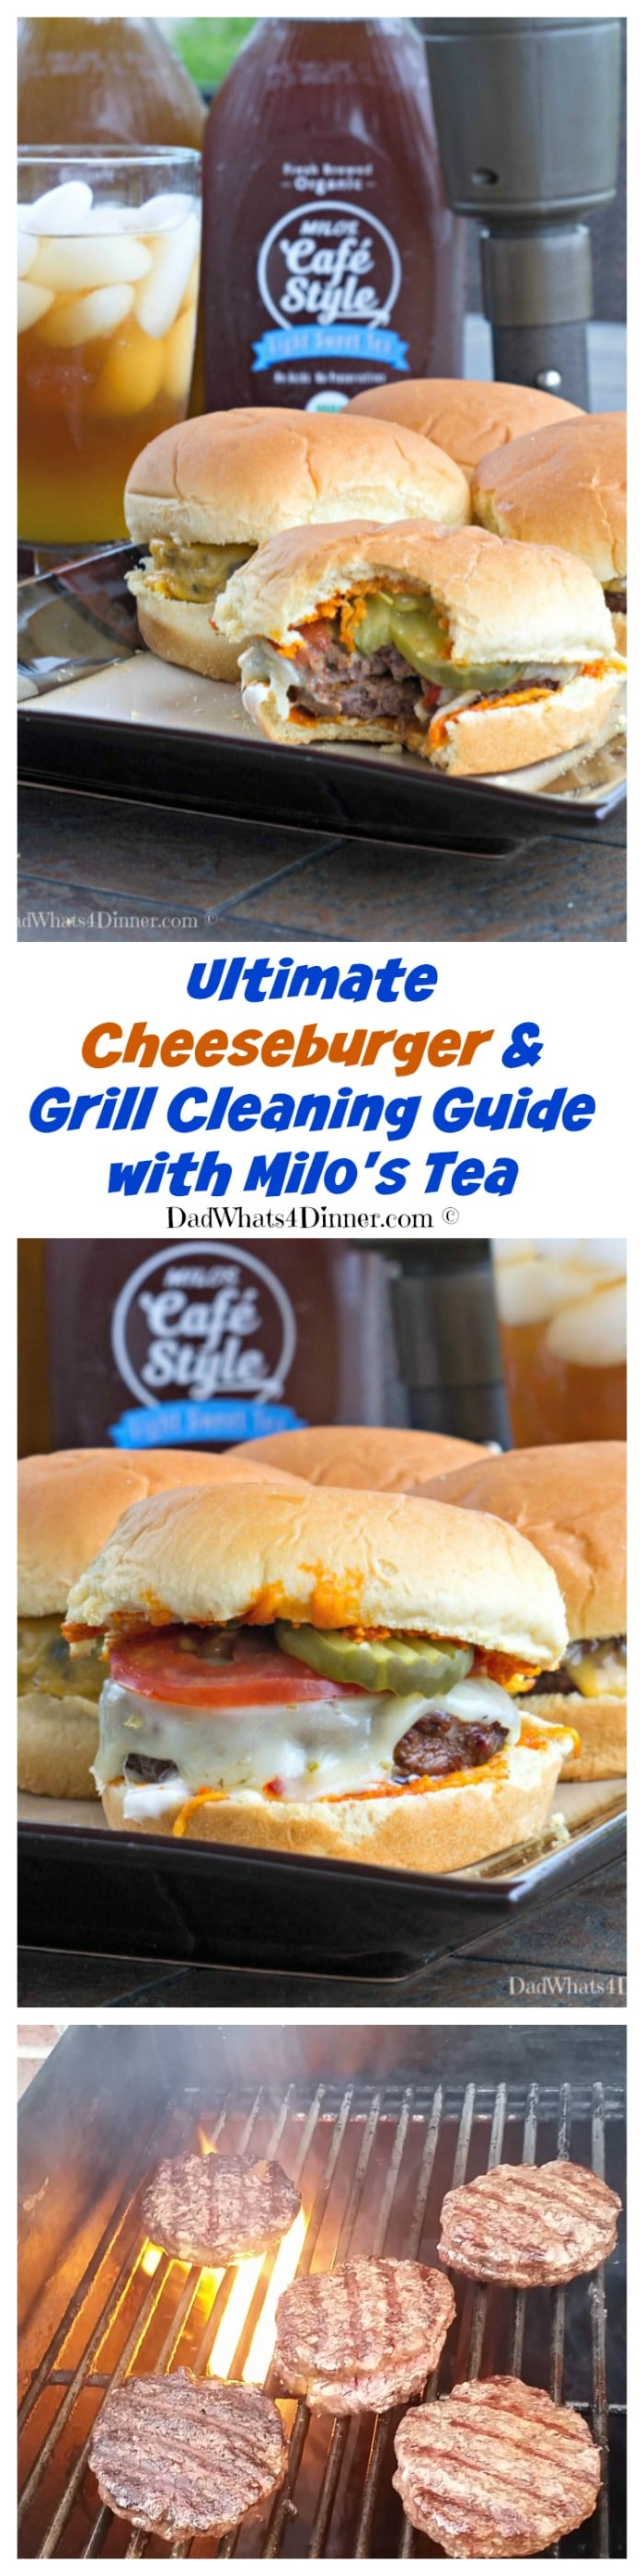 Summer grilling season is in full swing and my Ultimate Cheeseburger and Grill Cleaning Guide is all you need to keep the family fed and happy. www.dadwhats4dinner.com